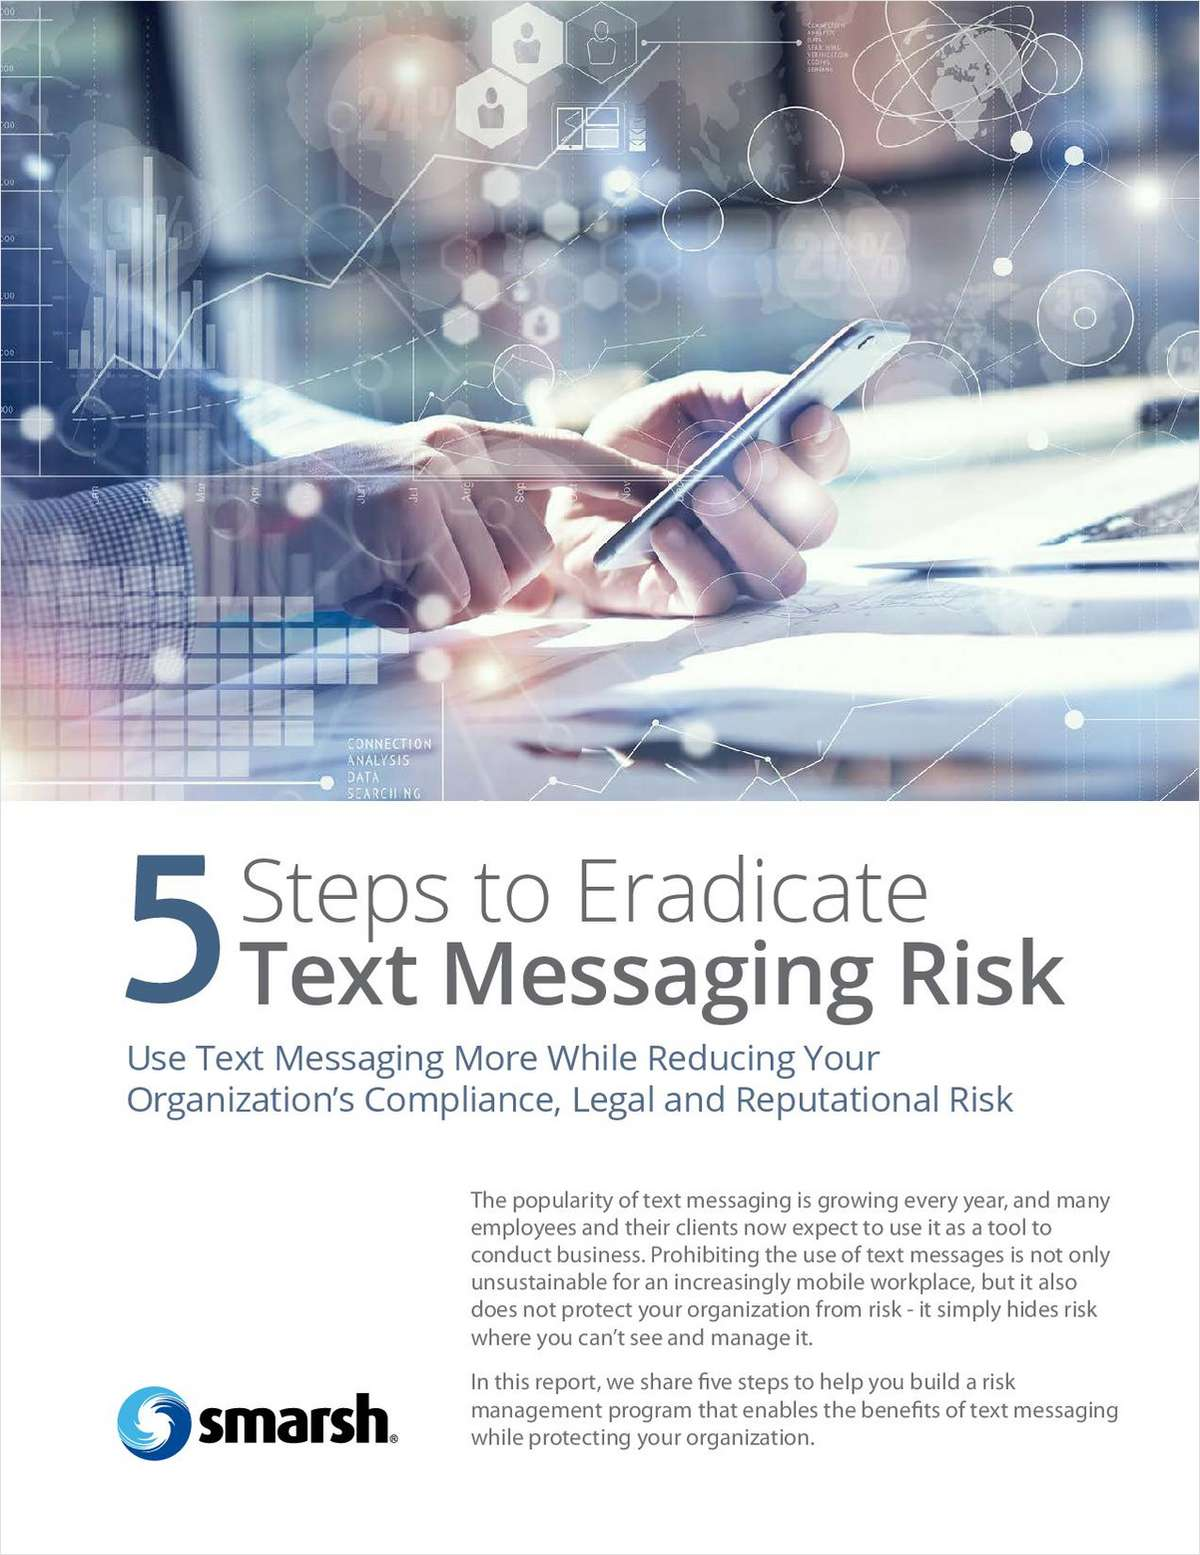 5 Steps to Eradicate Text Messaging Risk